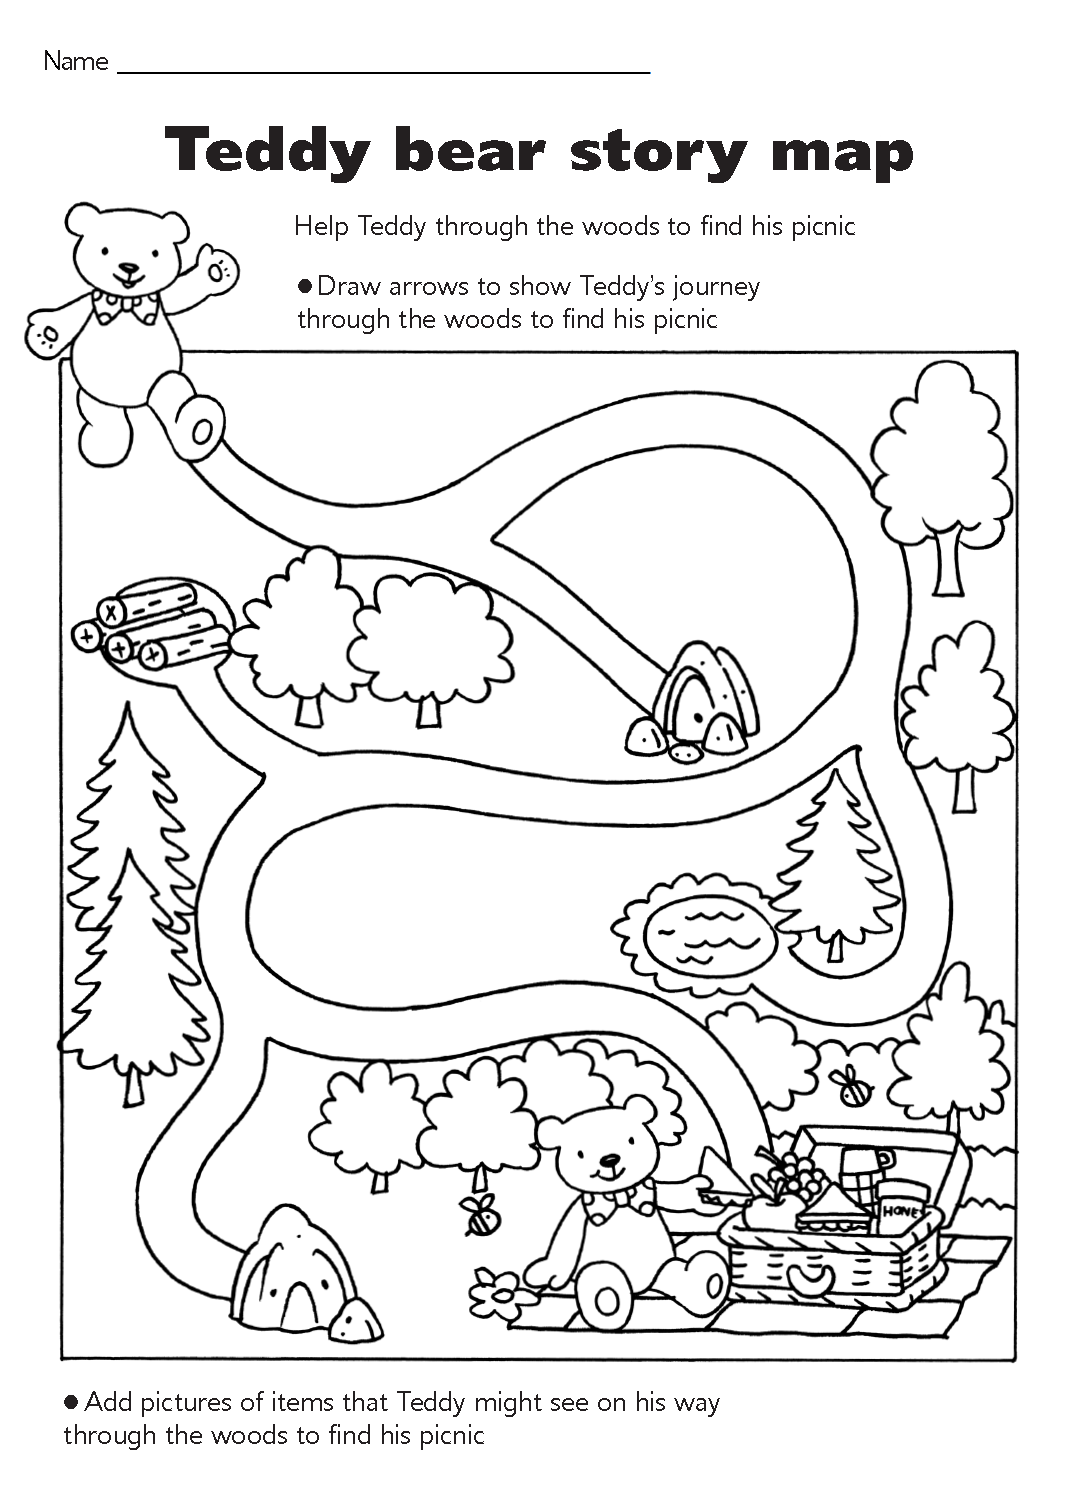 Teddy Bear Picnic Map Maze